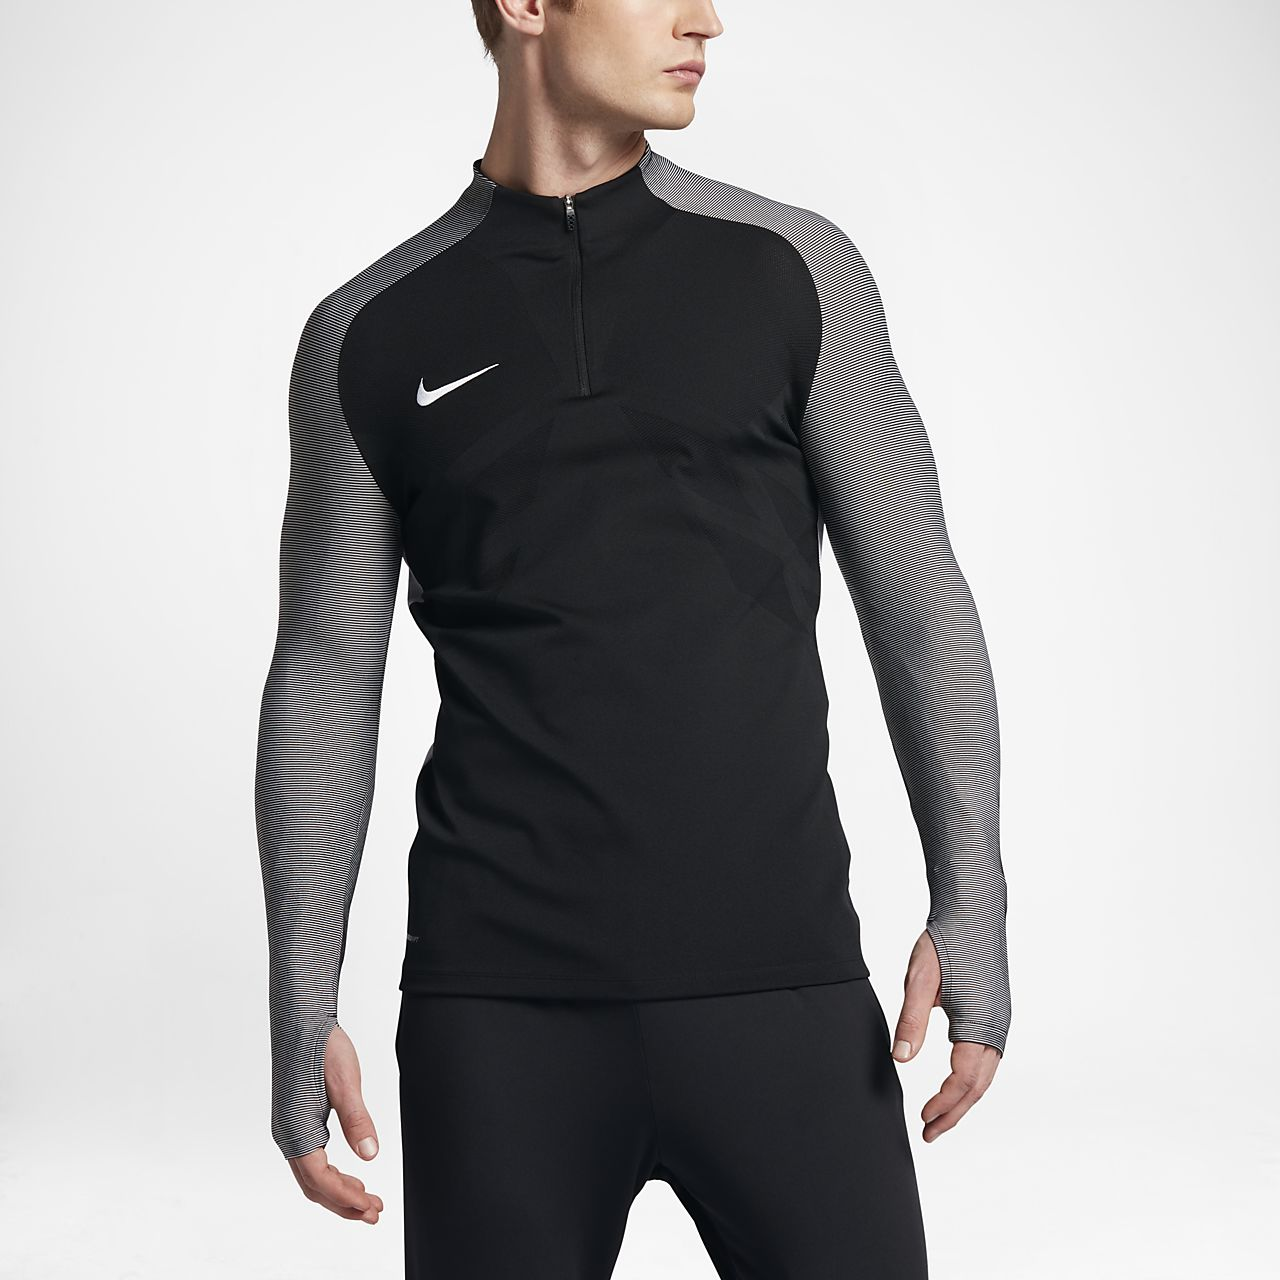 f02e4dd6f Nike Strike Aeroswift Men's 1/4 Zip Football Drill Top. Nike.com NZ